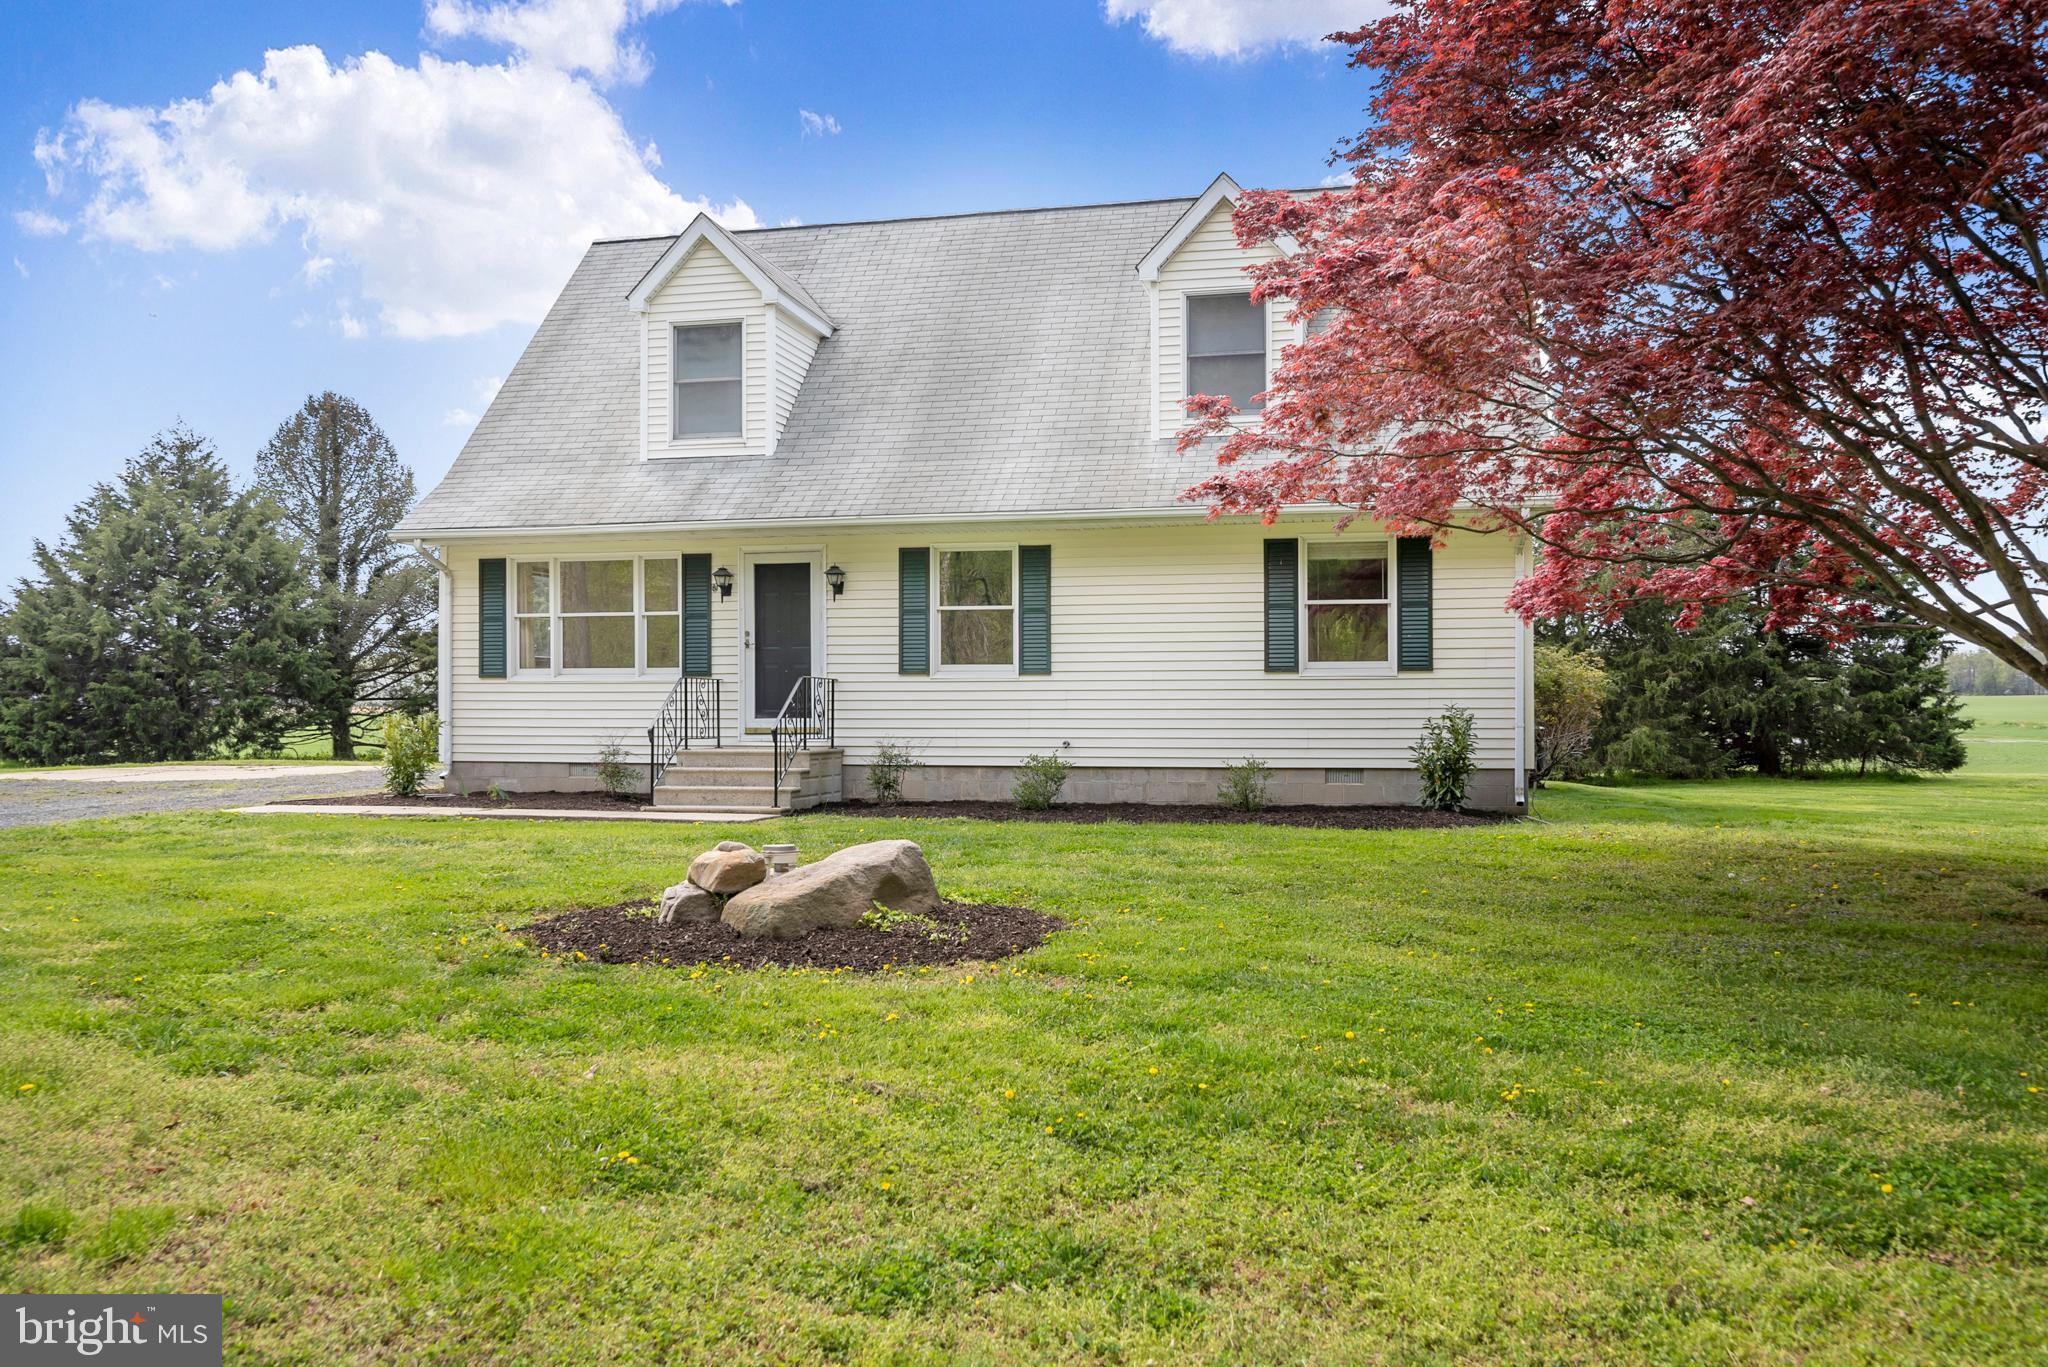 Spacious house surrounded by woods and farmland.   3 bedrooms and 1.5 baths on the main floor with a